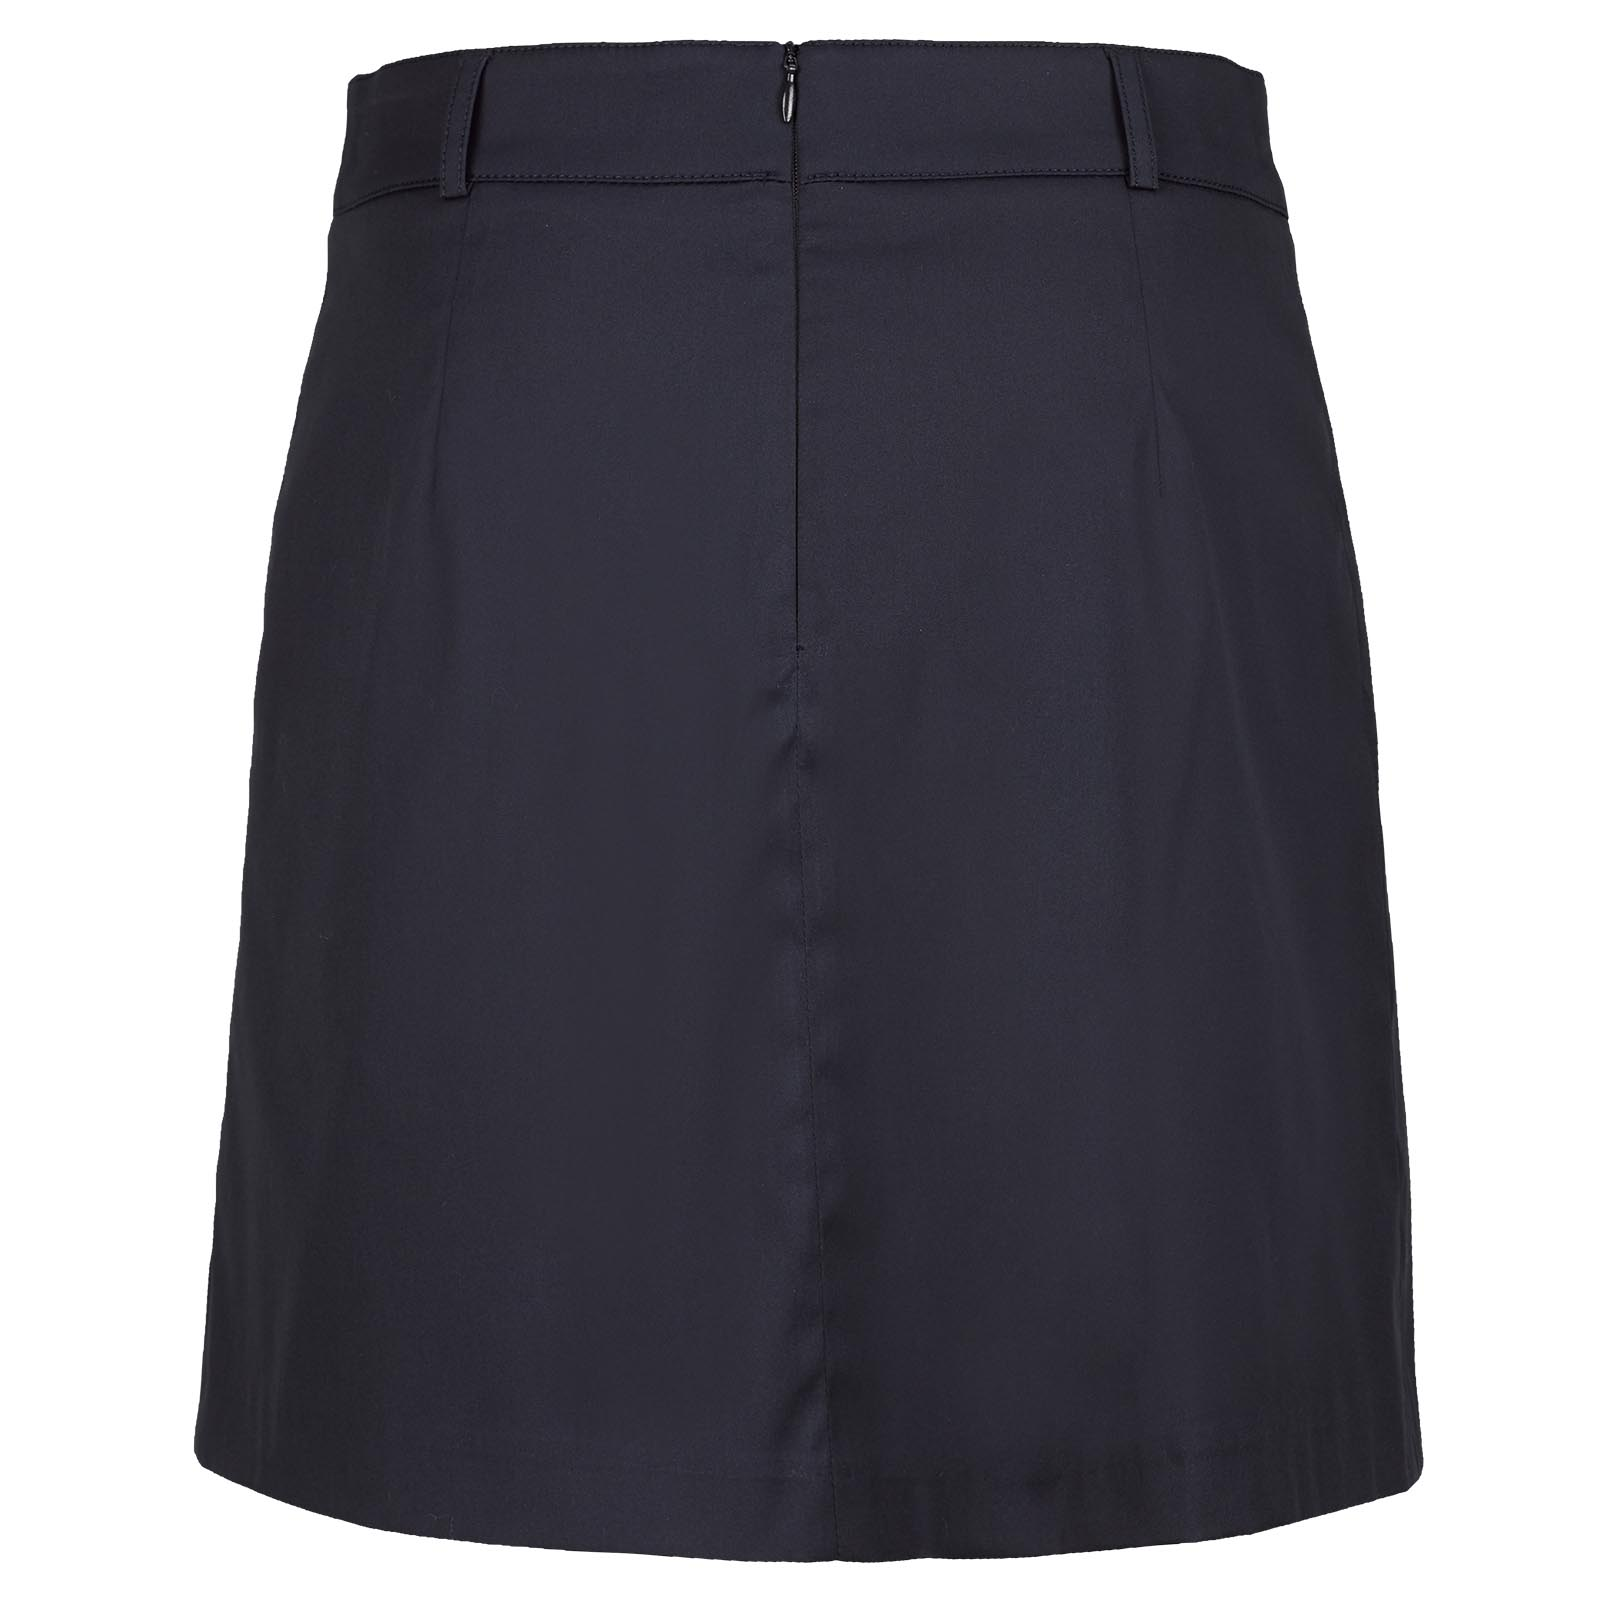 Retro Damen Golf-Skort aus Cotton-Blend mit Light Tech Stretch